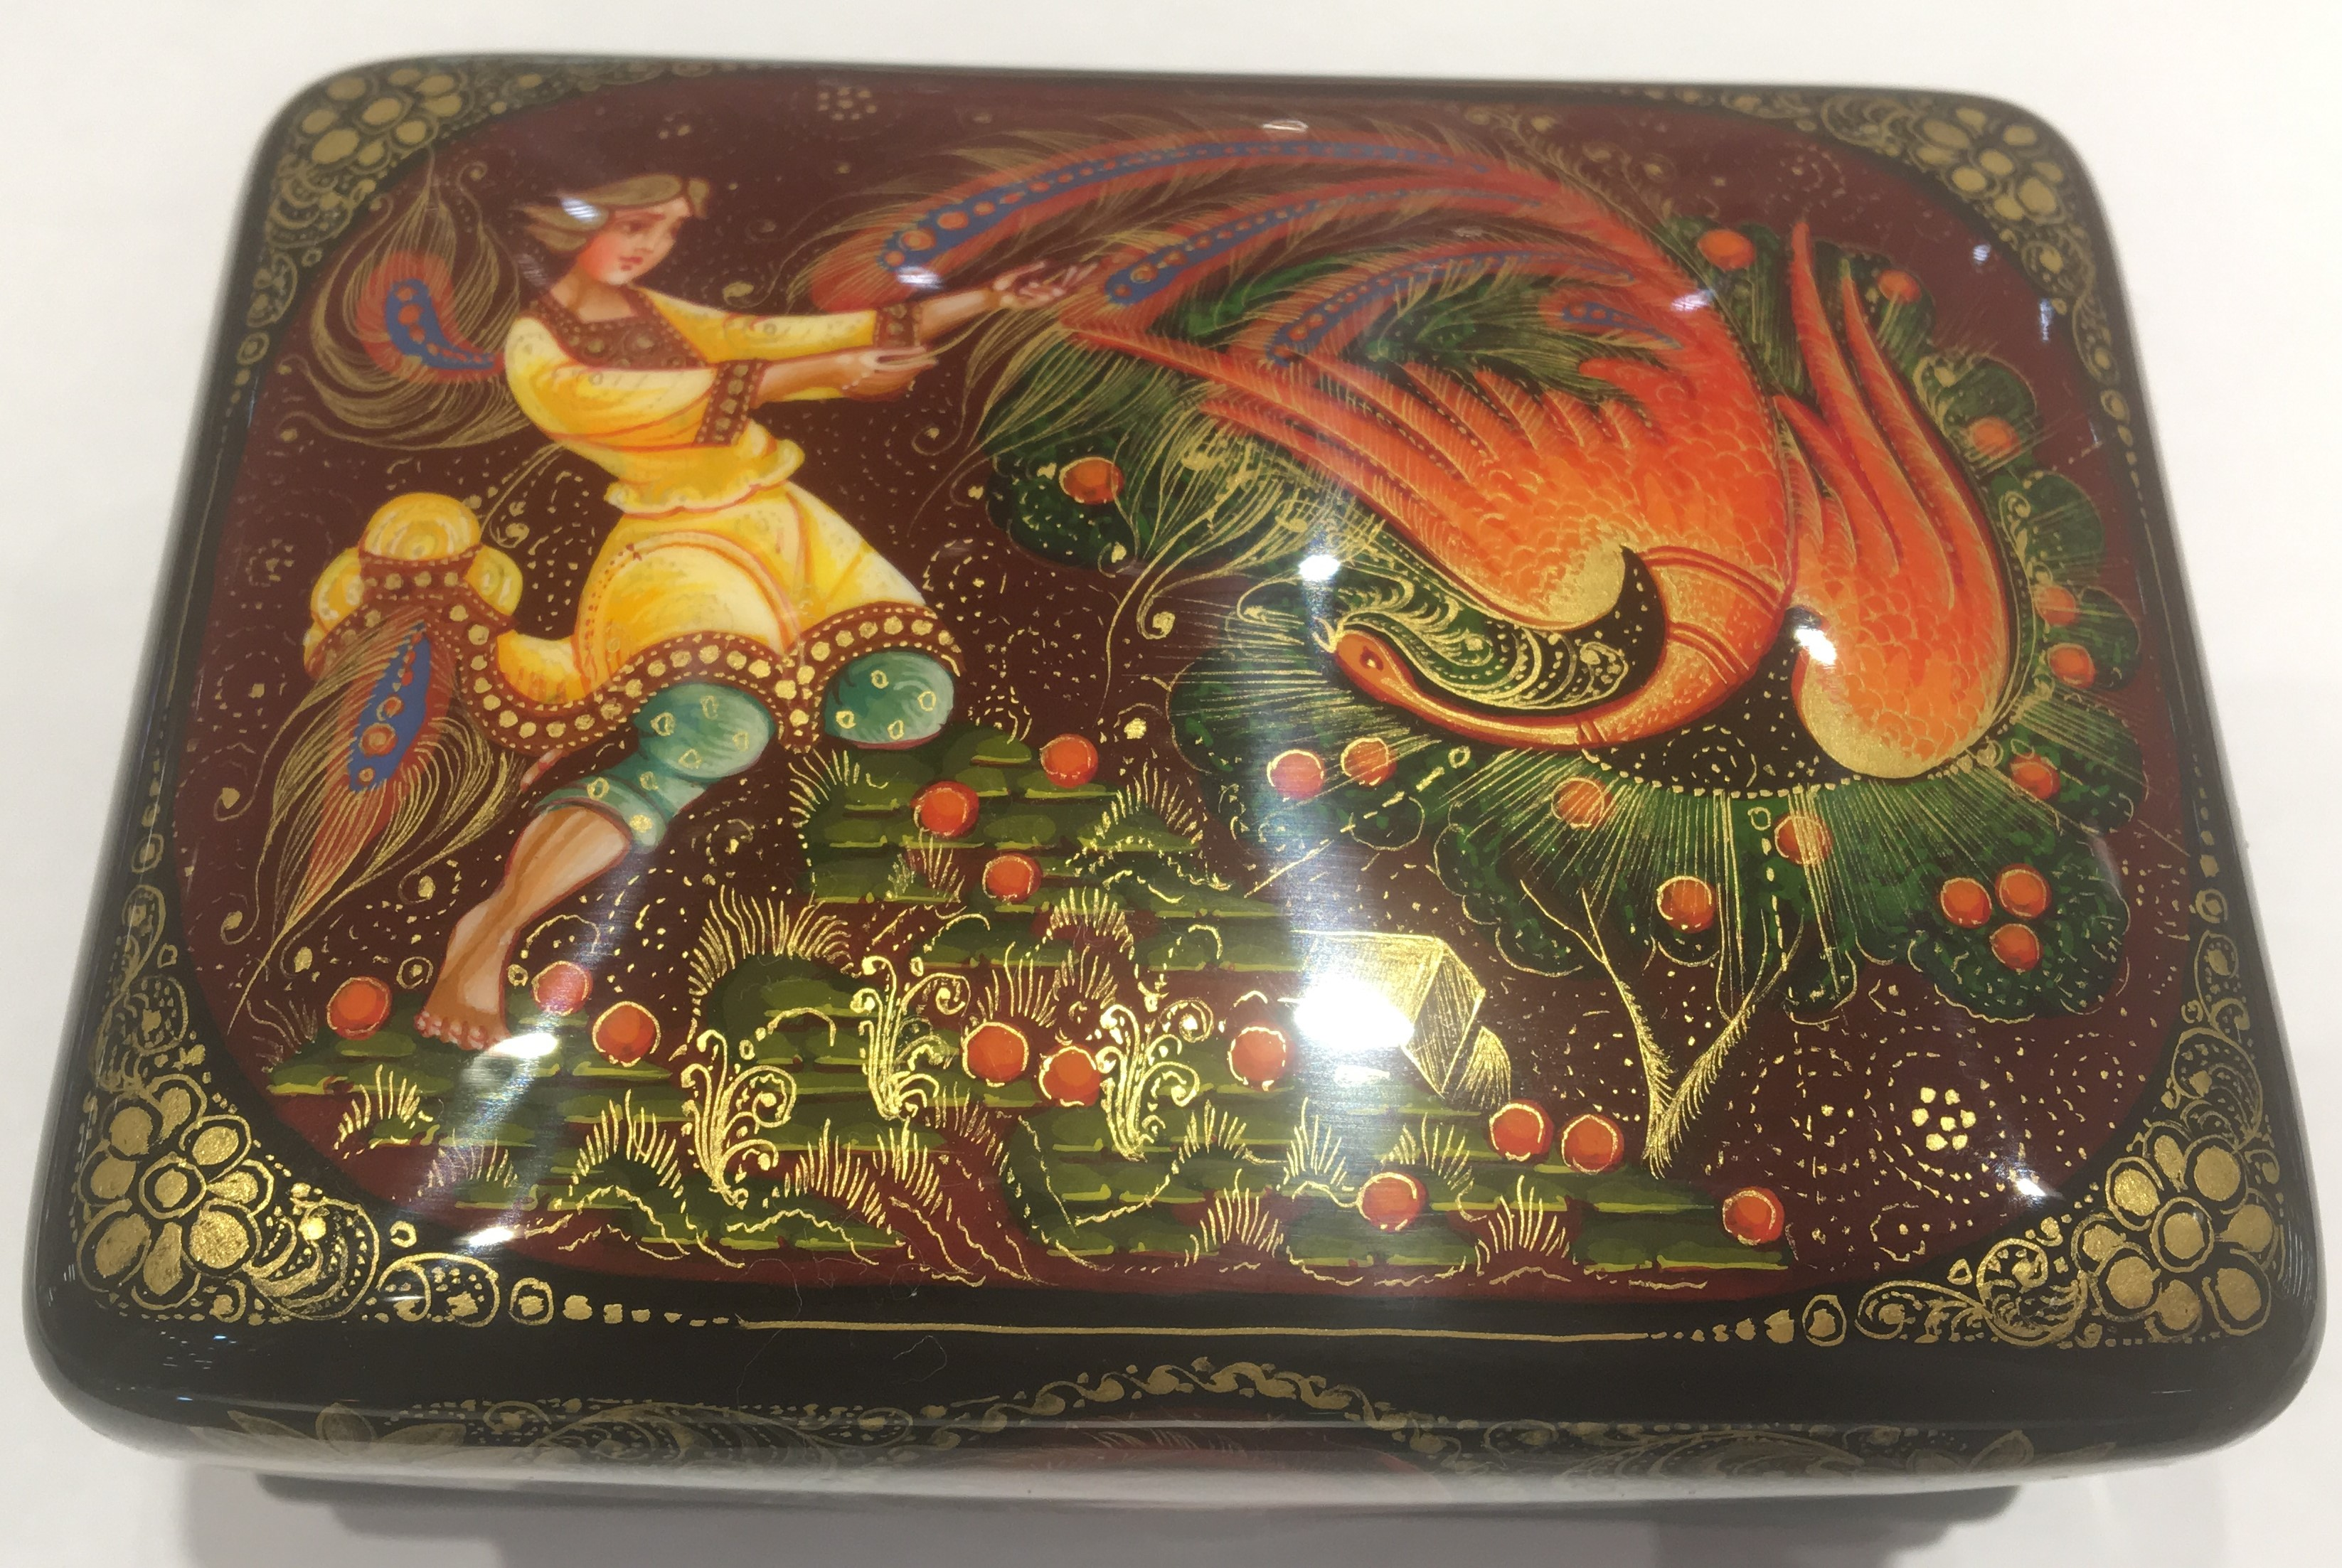 The Firebird Lacquered Box from Kholui